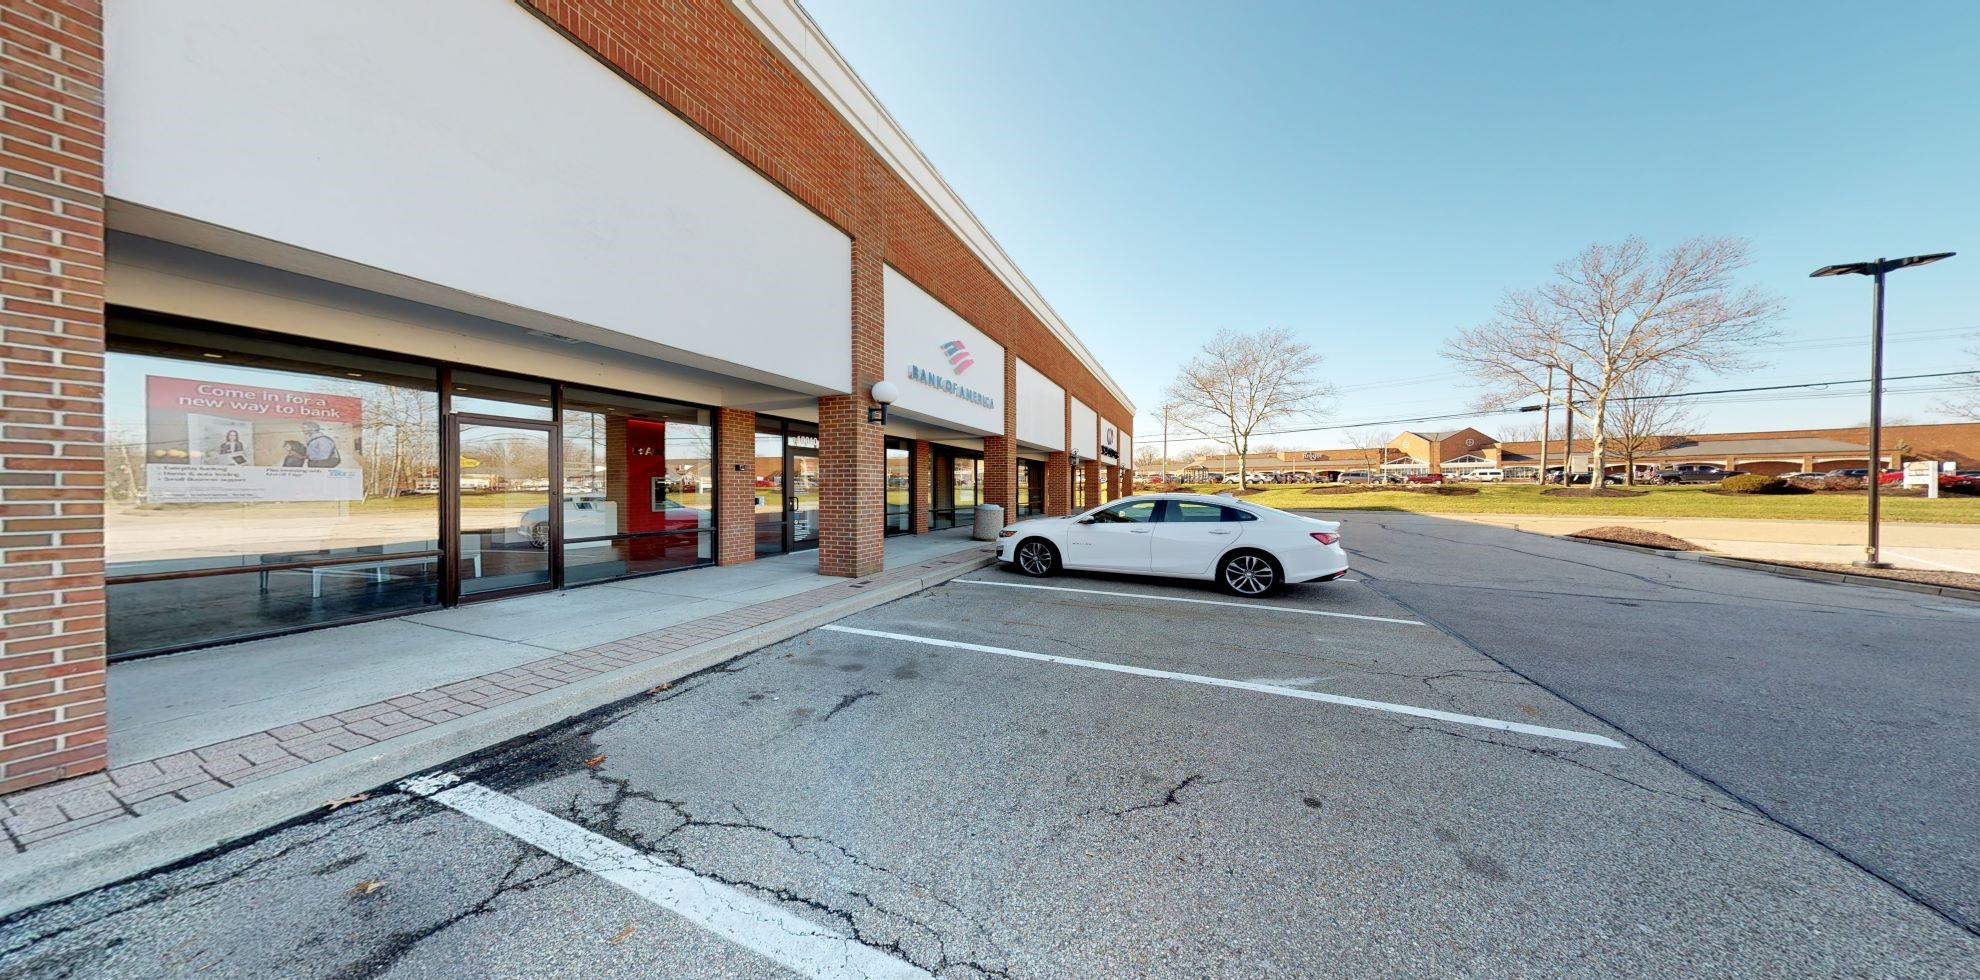 Bank of America Advanced Center with walk-up ATM | 10010 Montgomery Rd, Montgomery, OH 45242